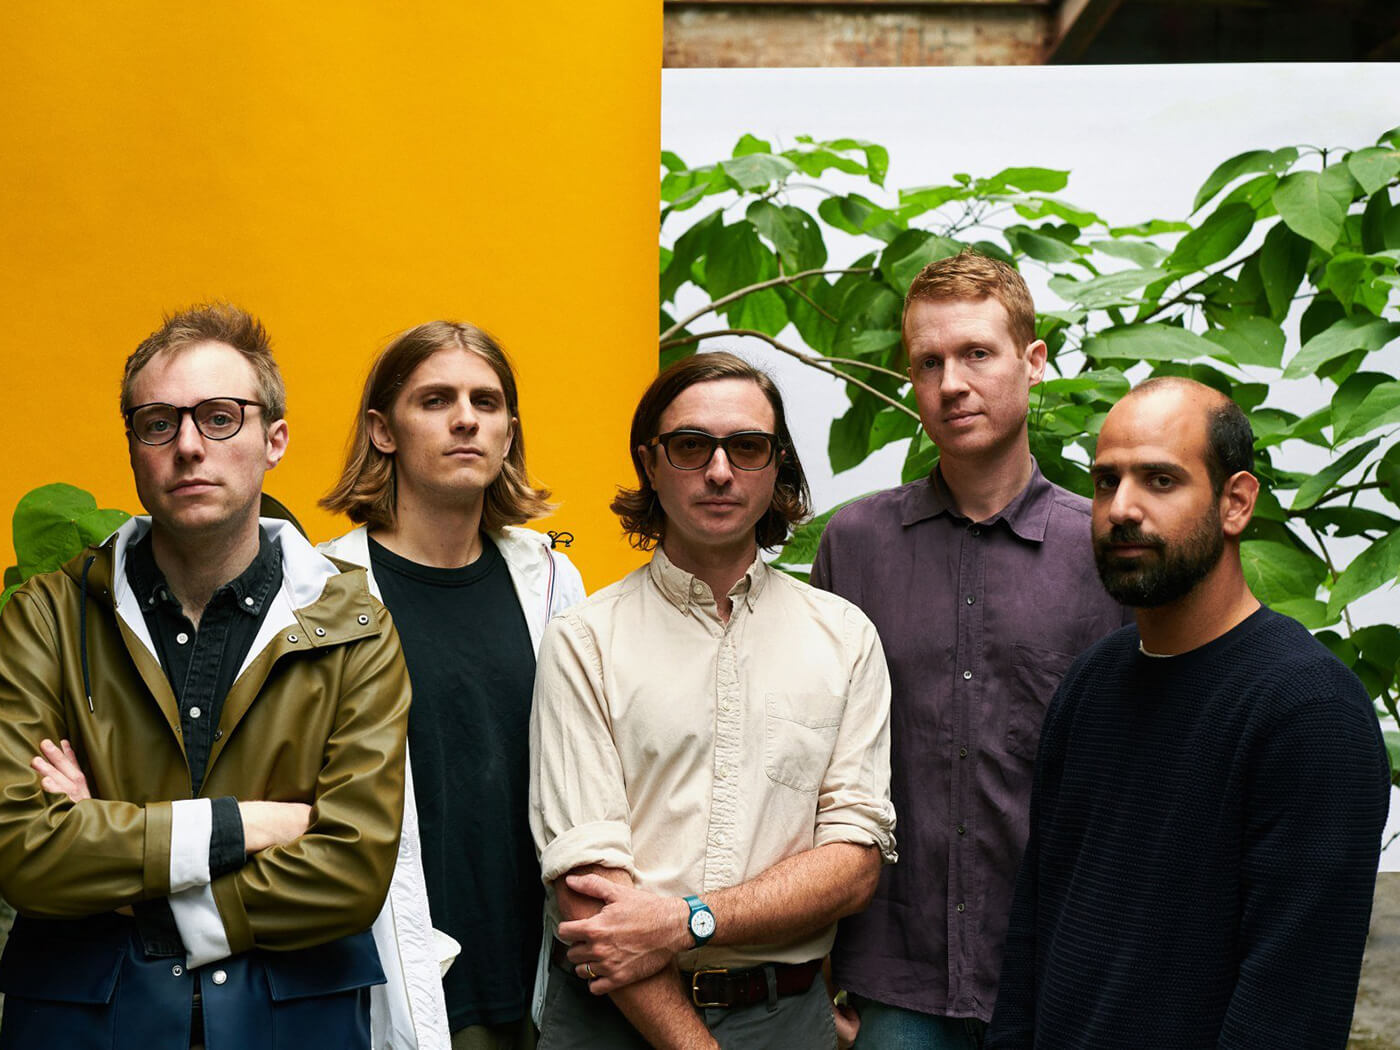 Real Estate announce new album, The Main Thing - UNCUT